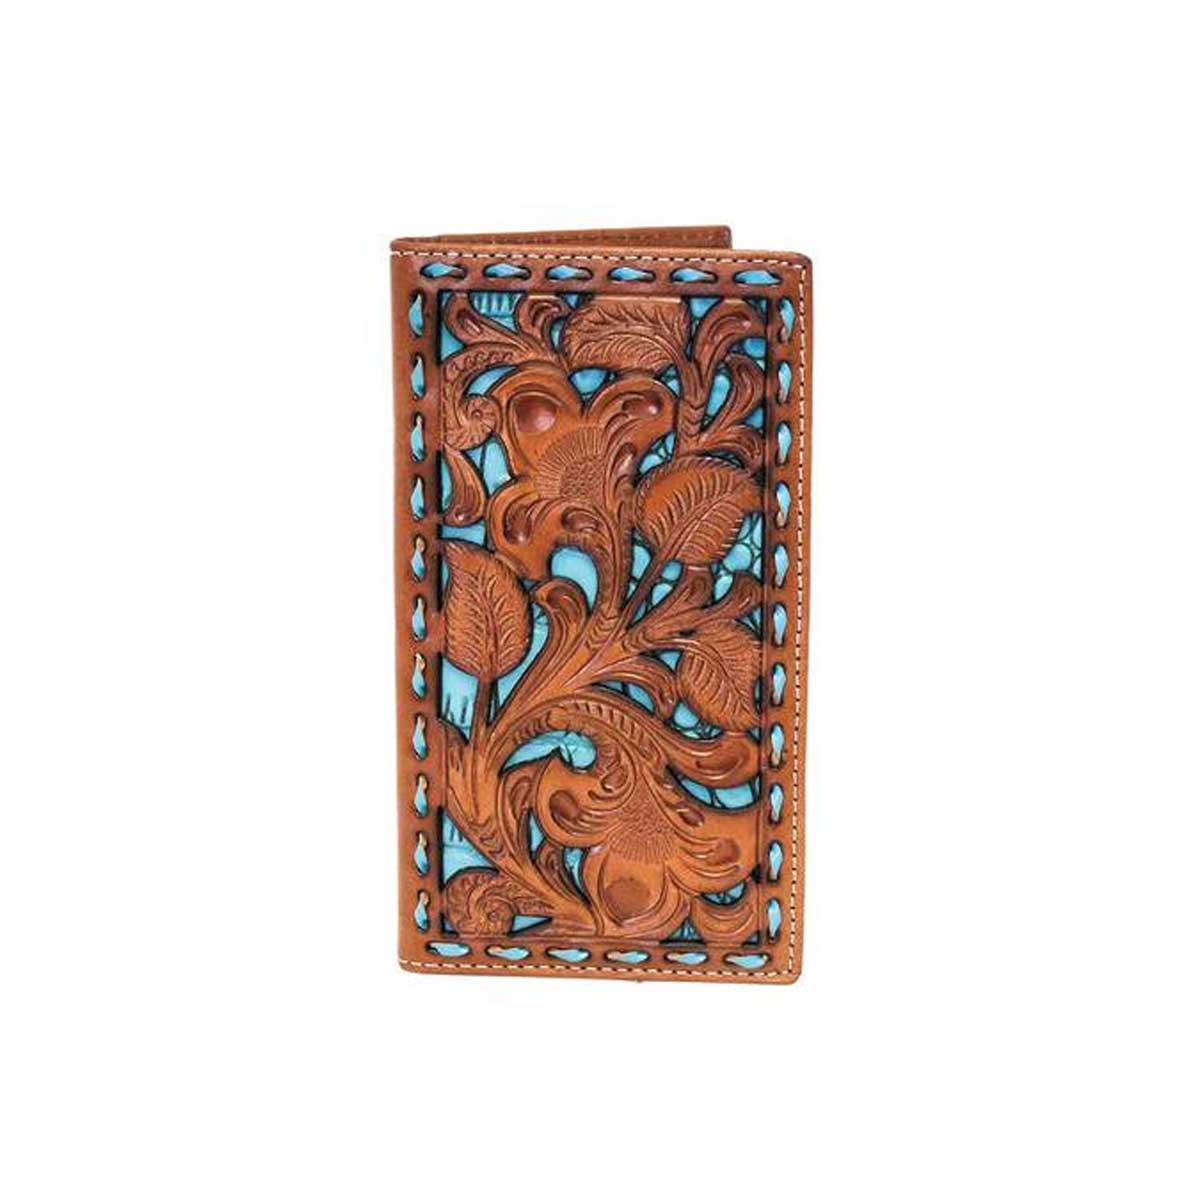 M&F Western Products Men's Nocona Floral Turquoise Underlay Rodeo Wallet - Turquoise